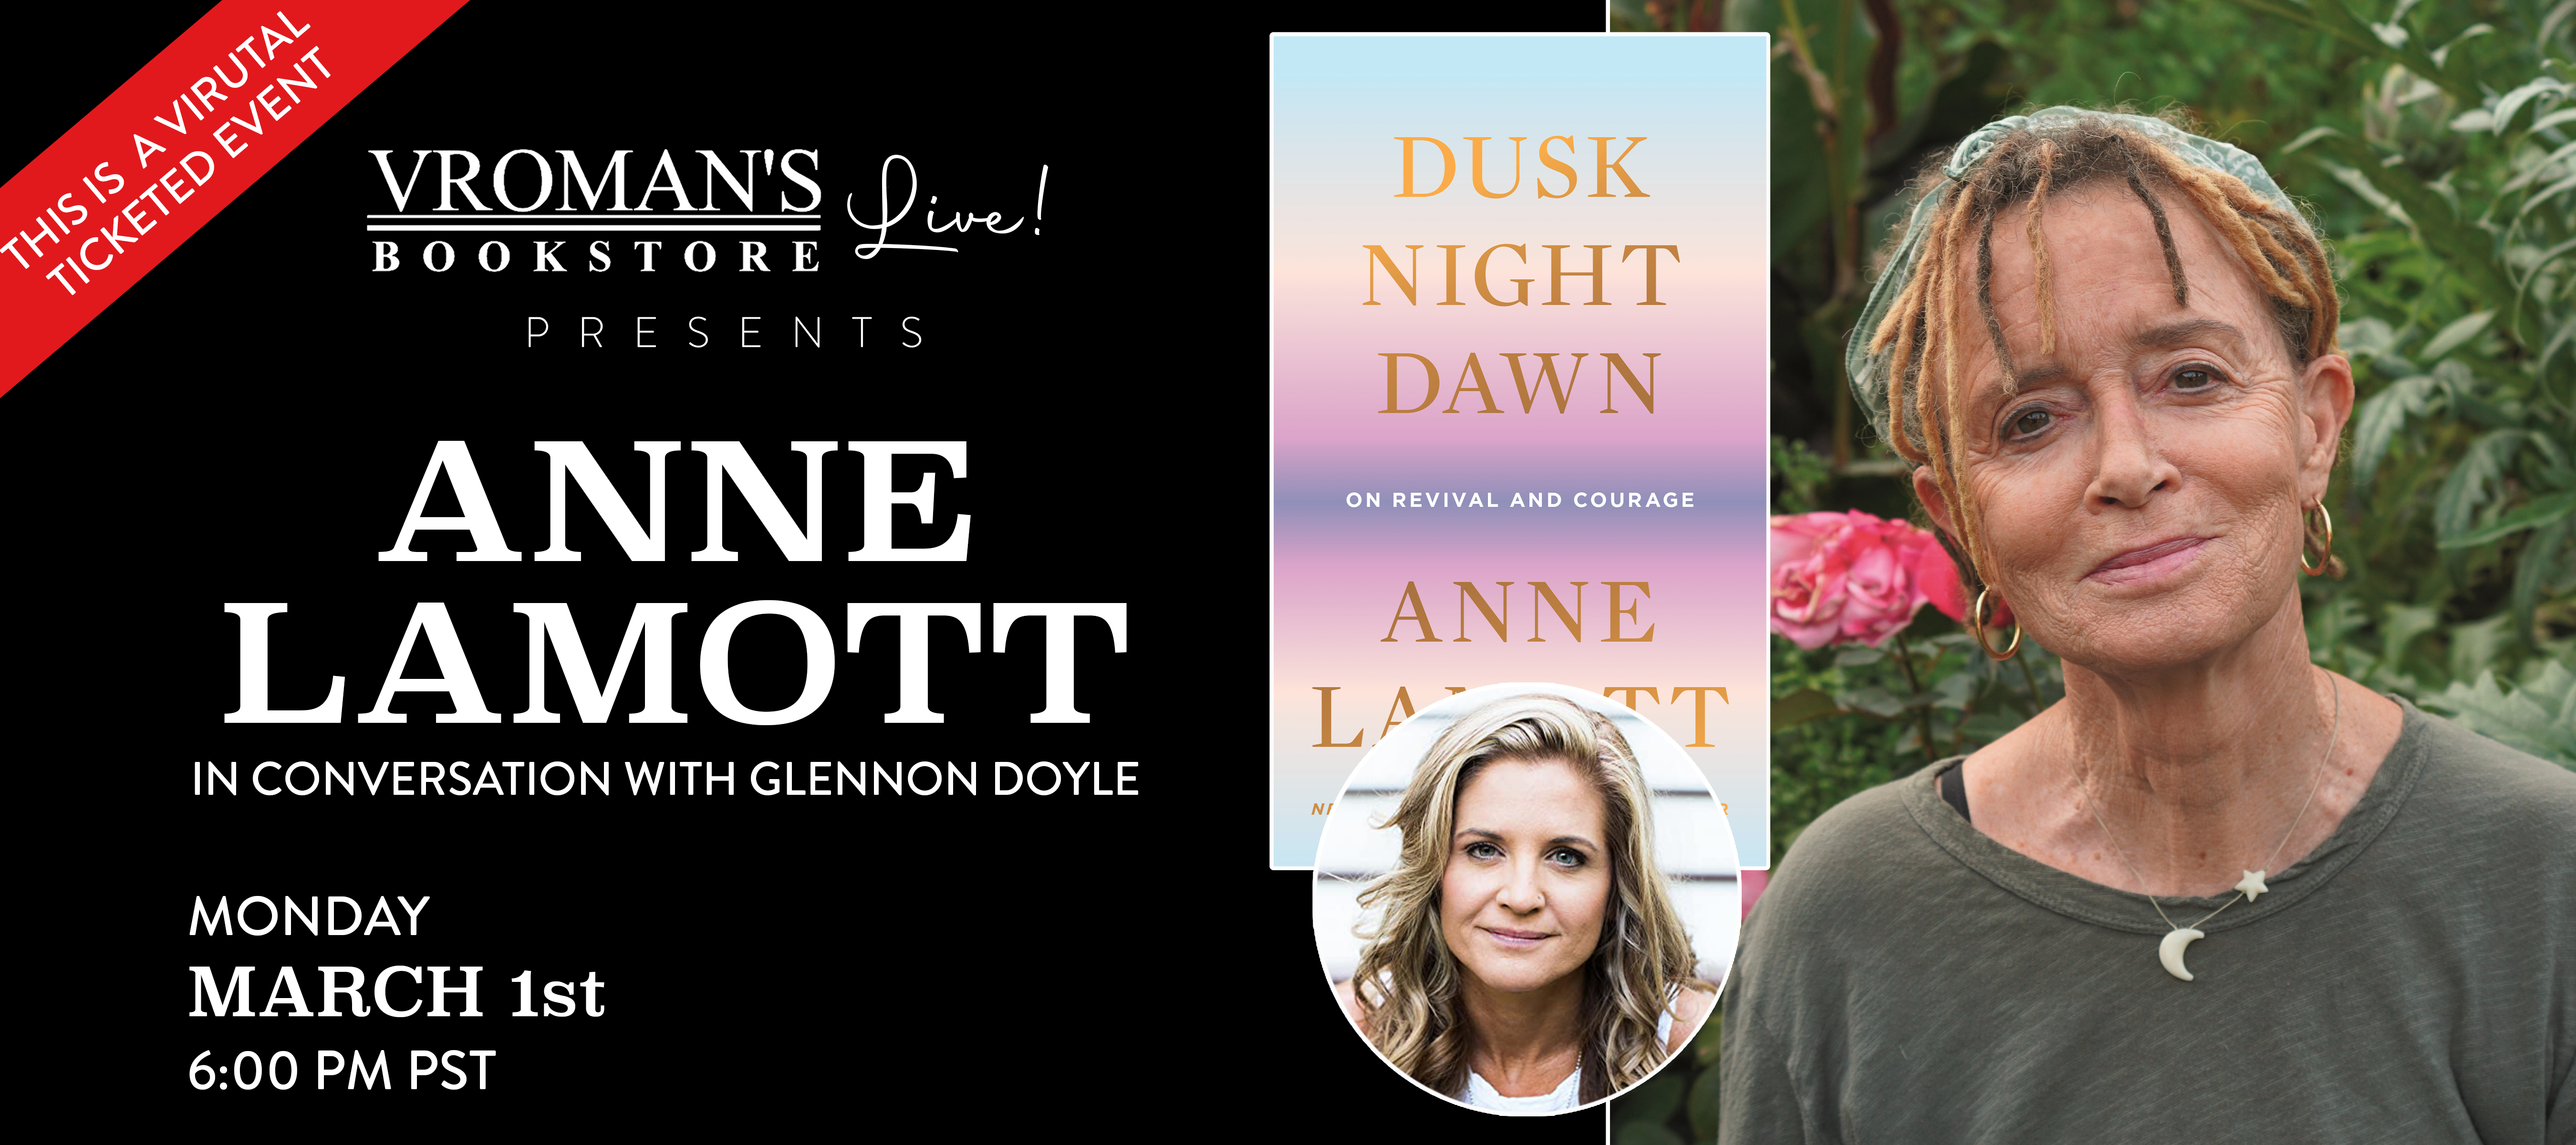 Anne Lamott, in conversation with Glennon Doyle, on Monday, March 1 at 6pm